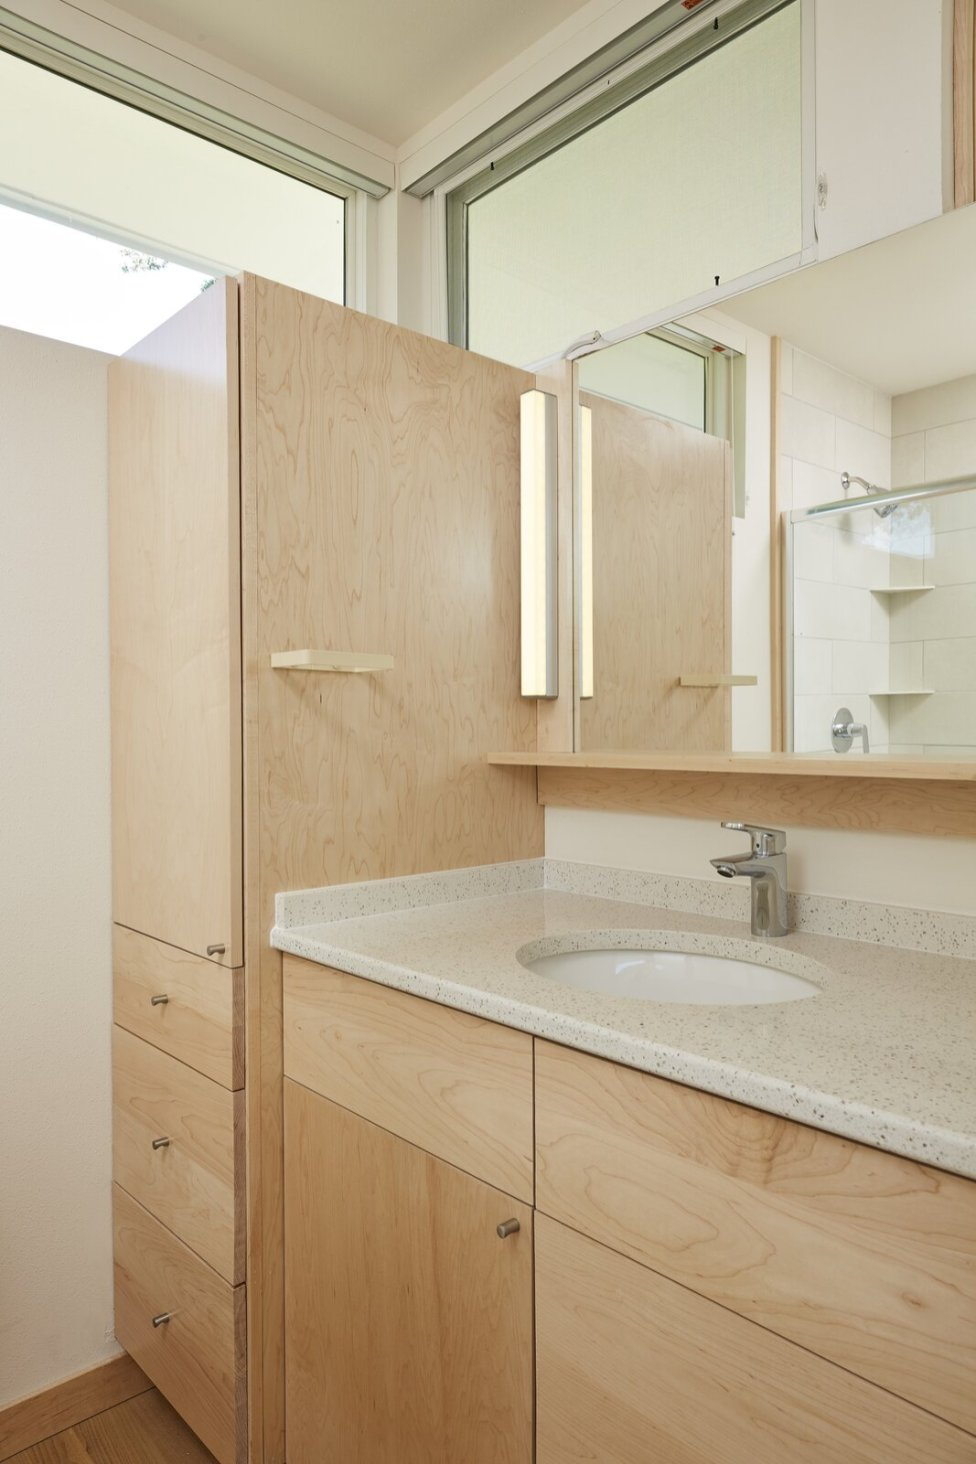 maple-cabinetry-in-the-main-bathroom-lends-warmth-and-texture